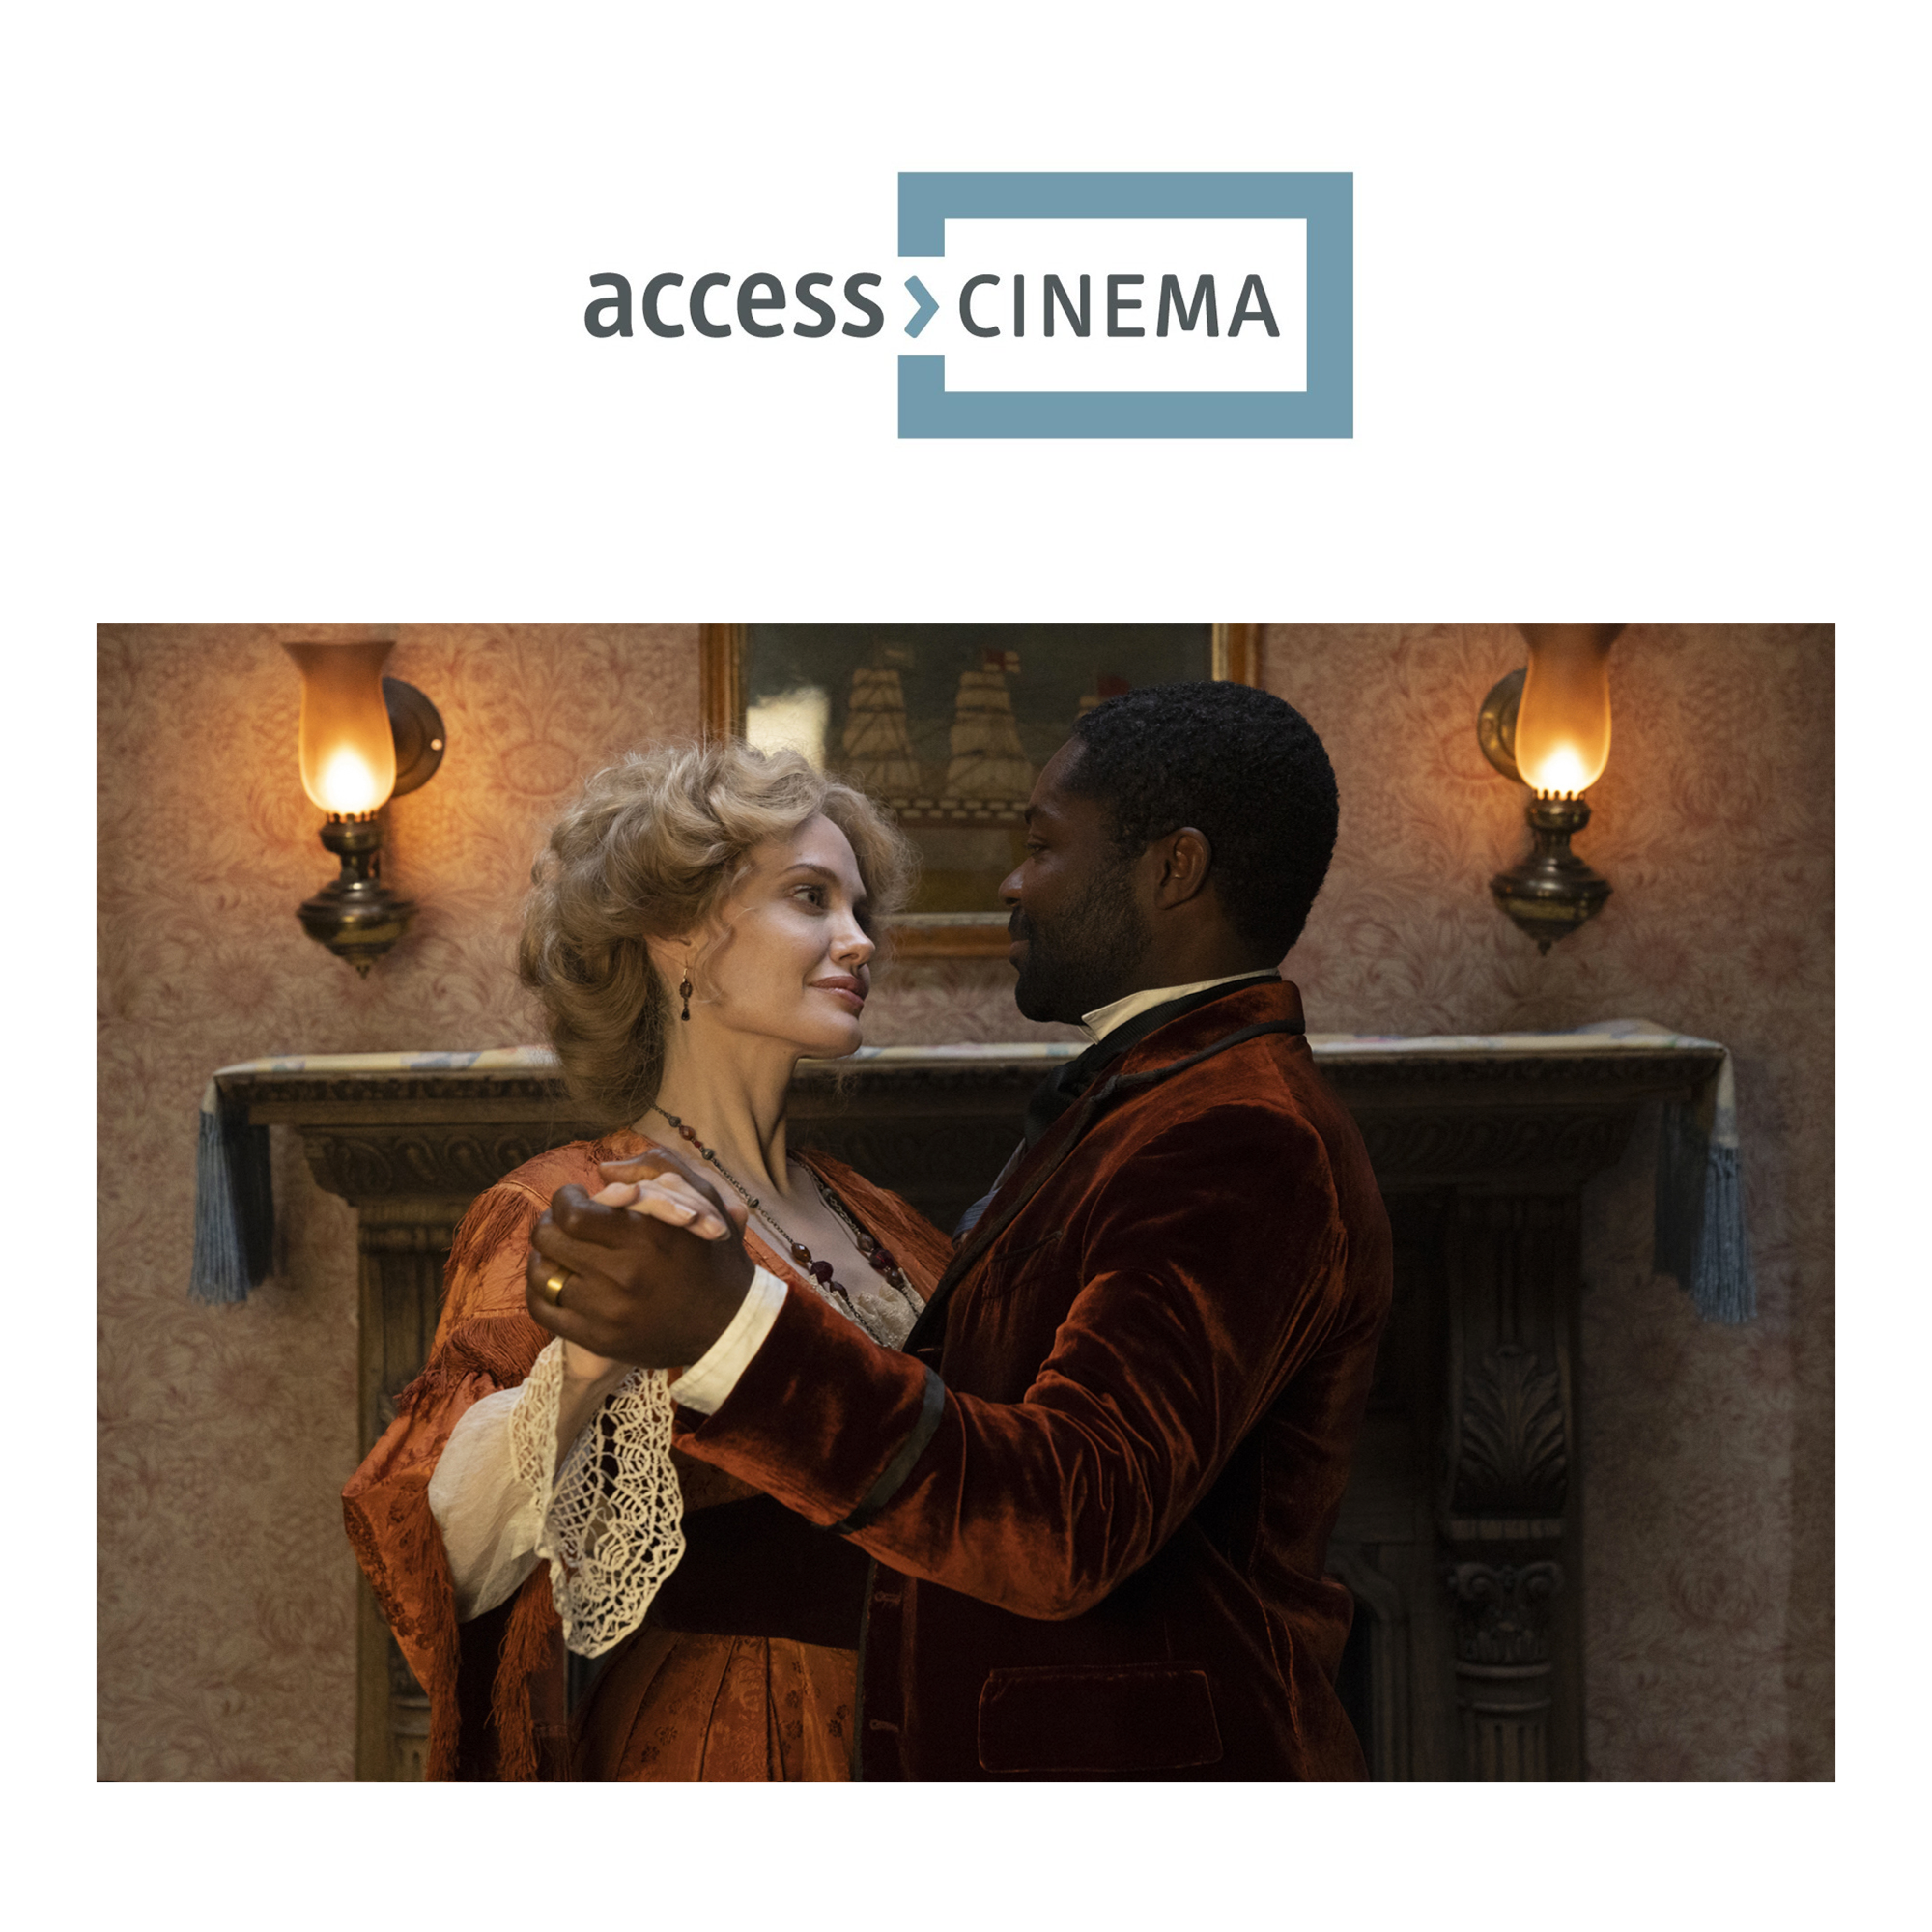 Come Away at access>CINEMA